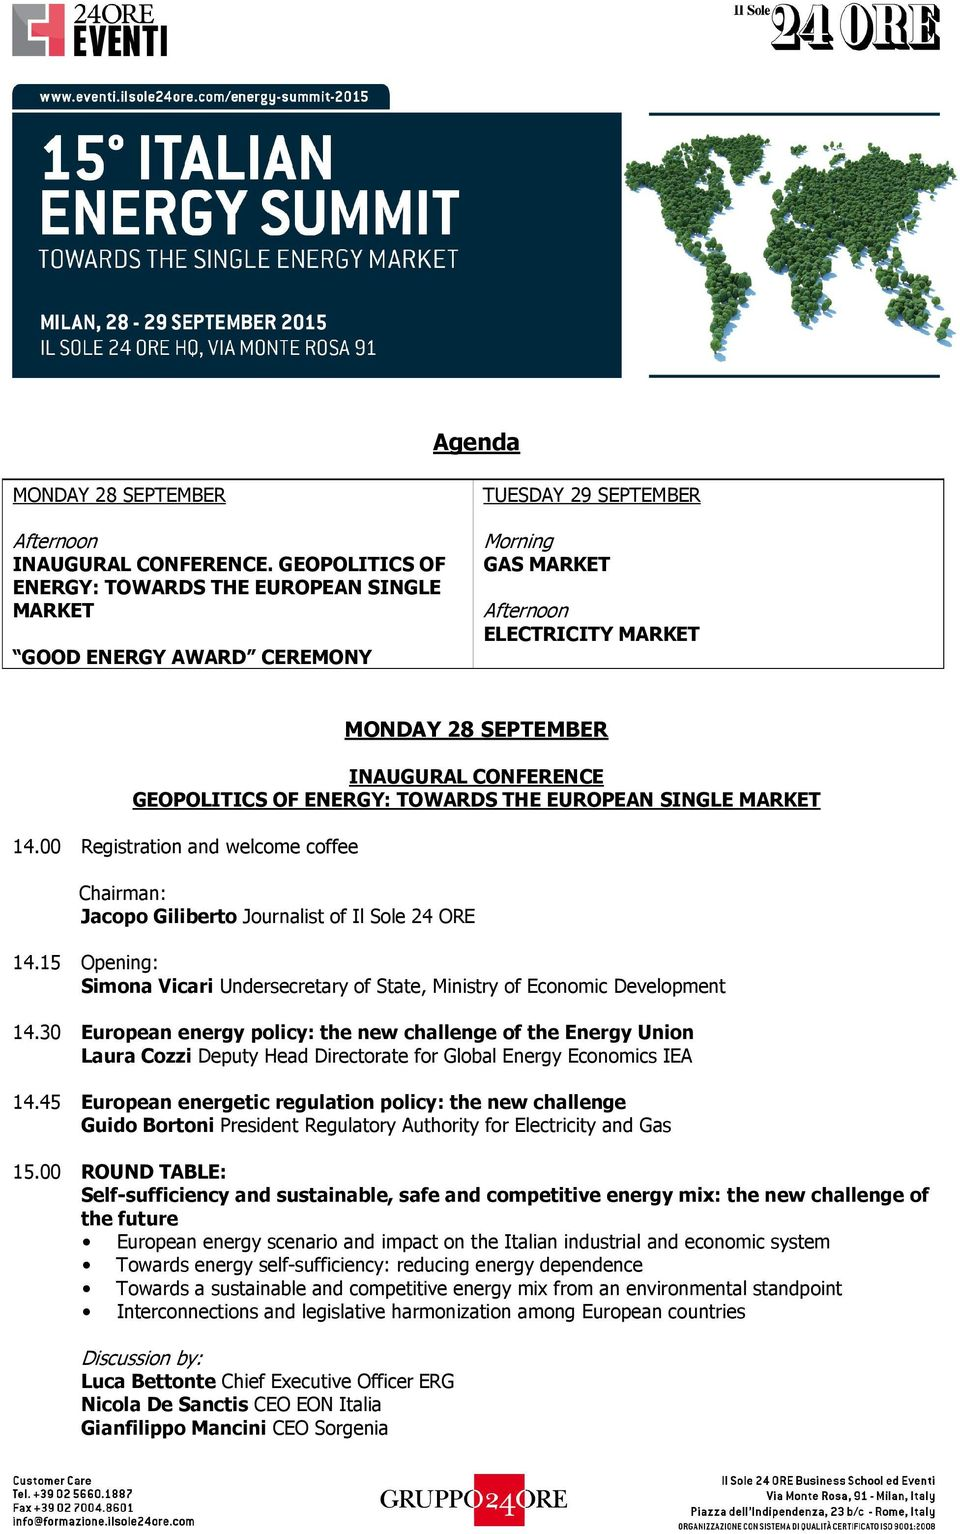 ENERGY: TOWARDS THE EUROPEAN SINGLE MARKET 14.00 Registration and welcome coffee Jacopo Giliberto Journalist of Il Sole 24 ORE 14.